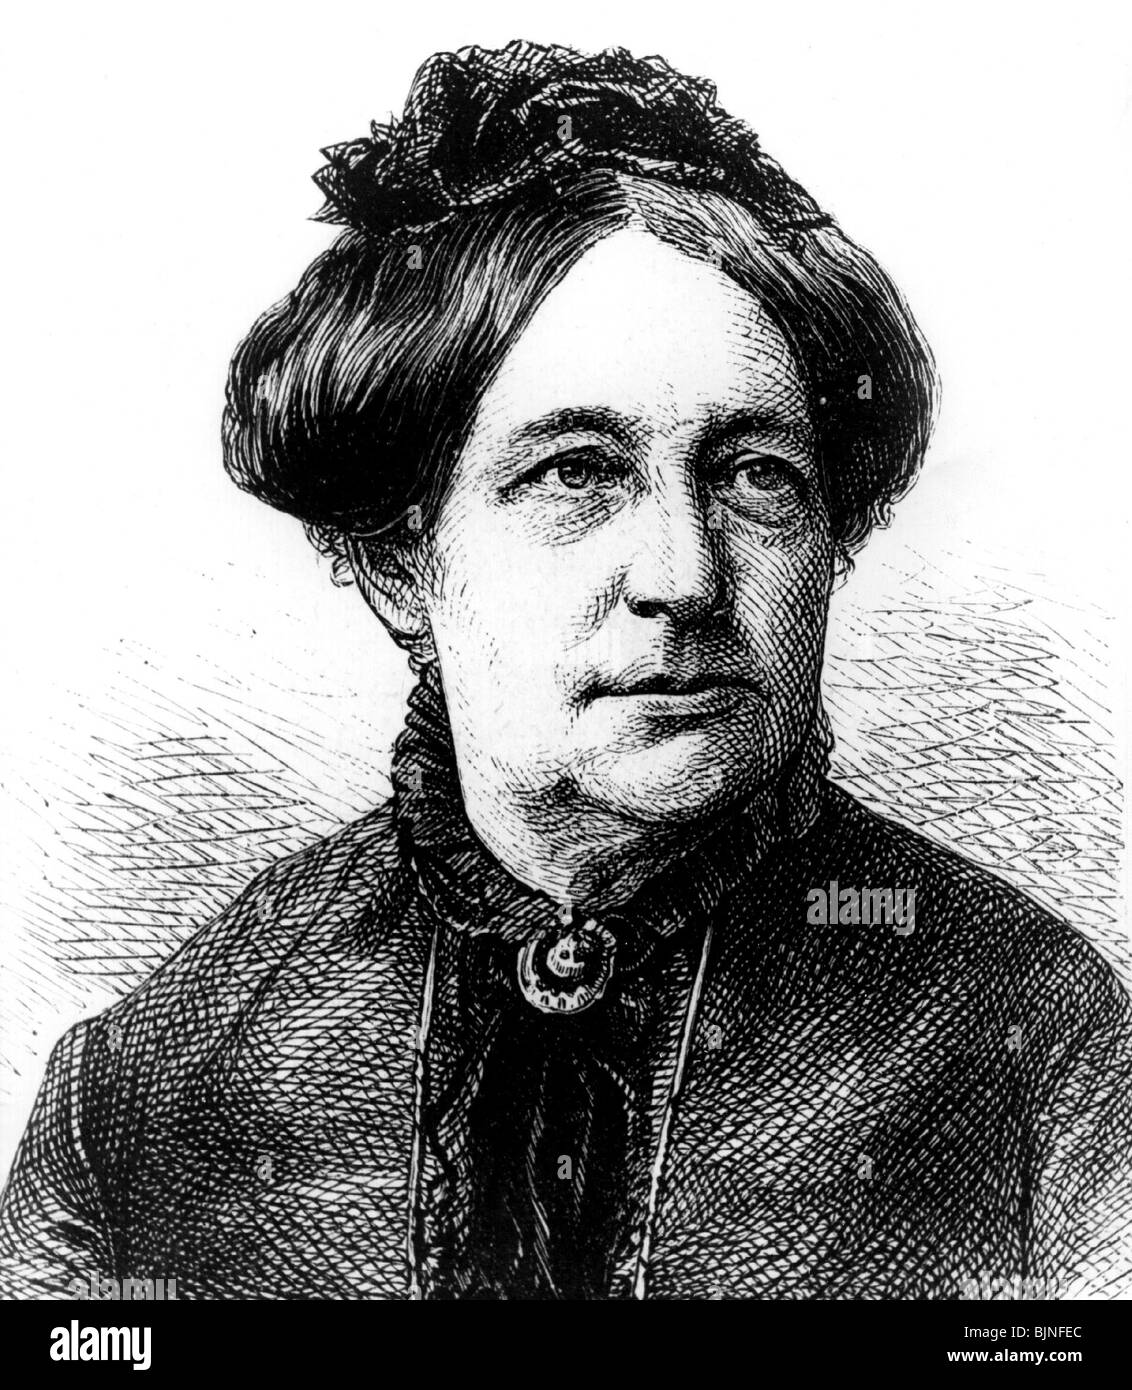 Otto-Peters, Luise, 26.3.1819 - 13.3.1895, German author / writer, feminist, portrait, wood engraving, 19th century, - Stock Image